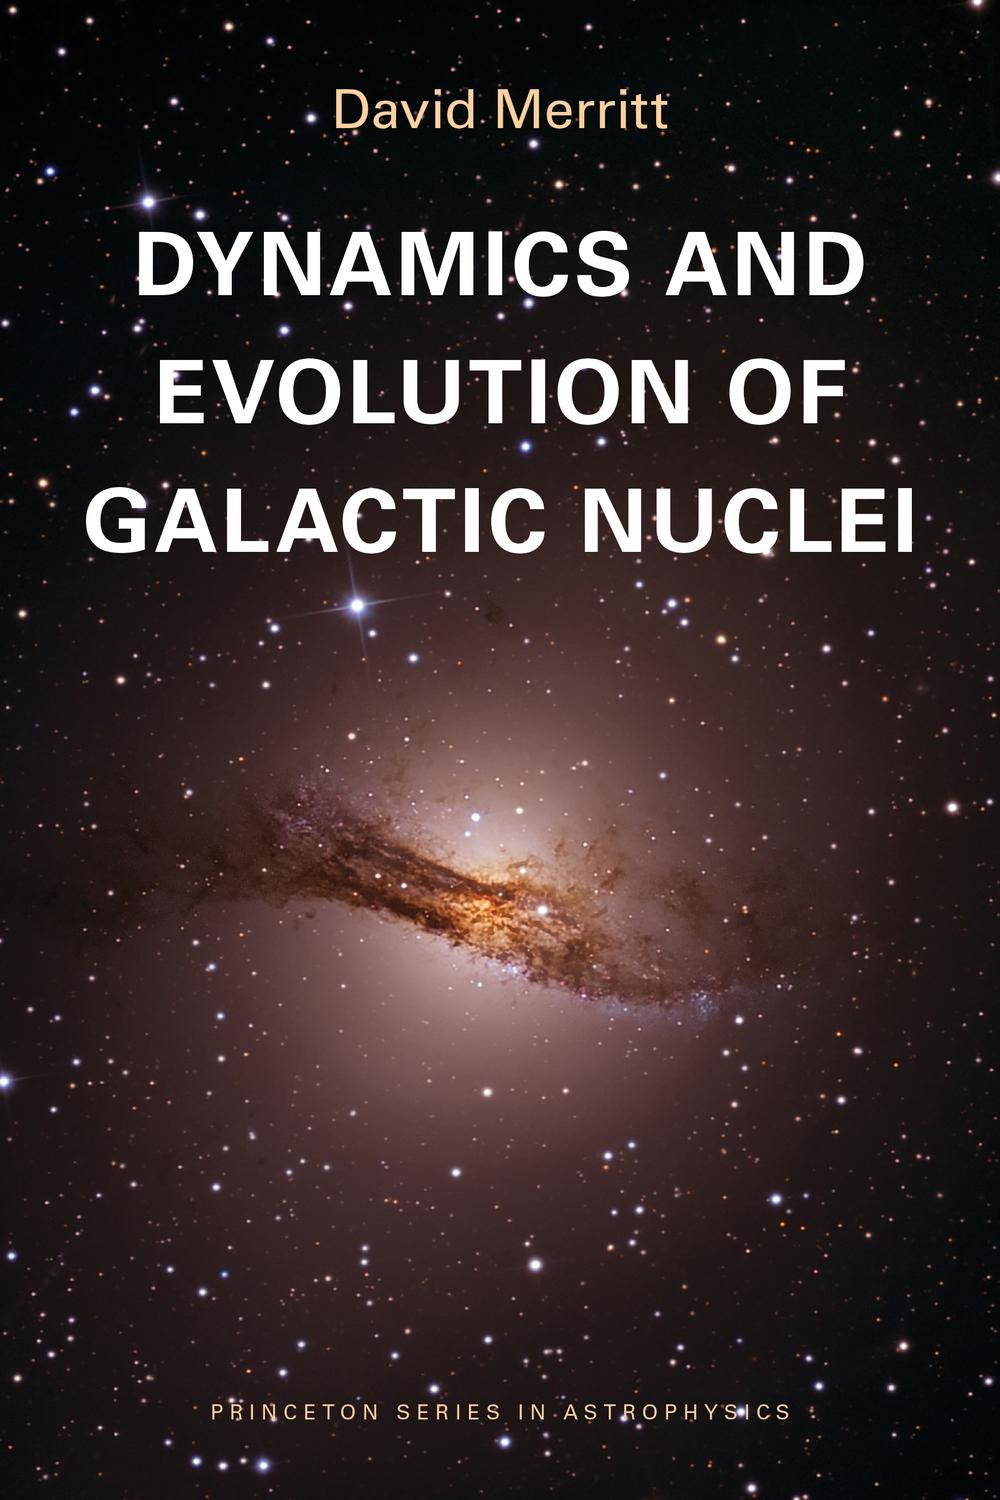 Dynamics and Evolution of Galactic Nuclei by David Merritt   Read